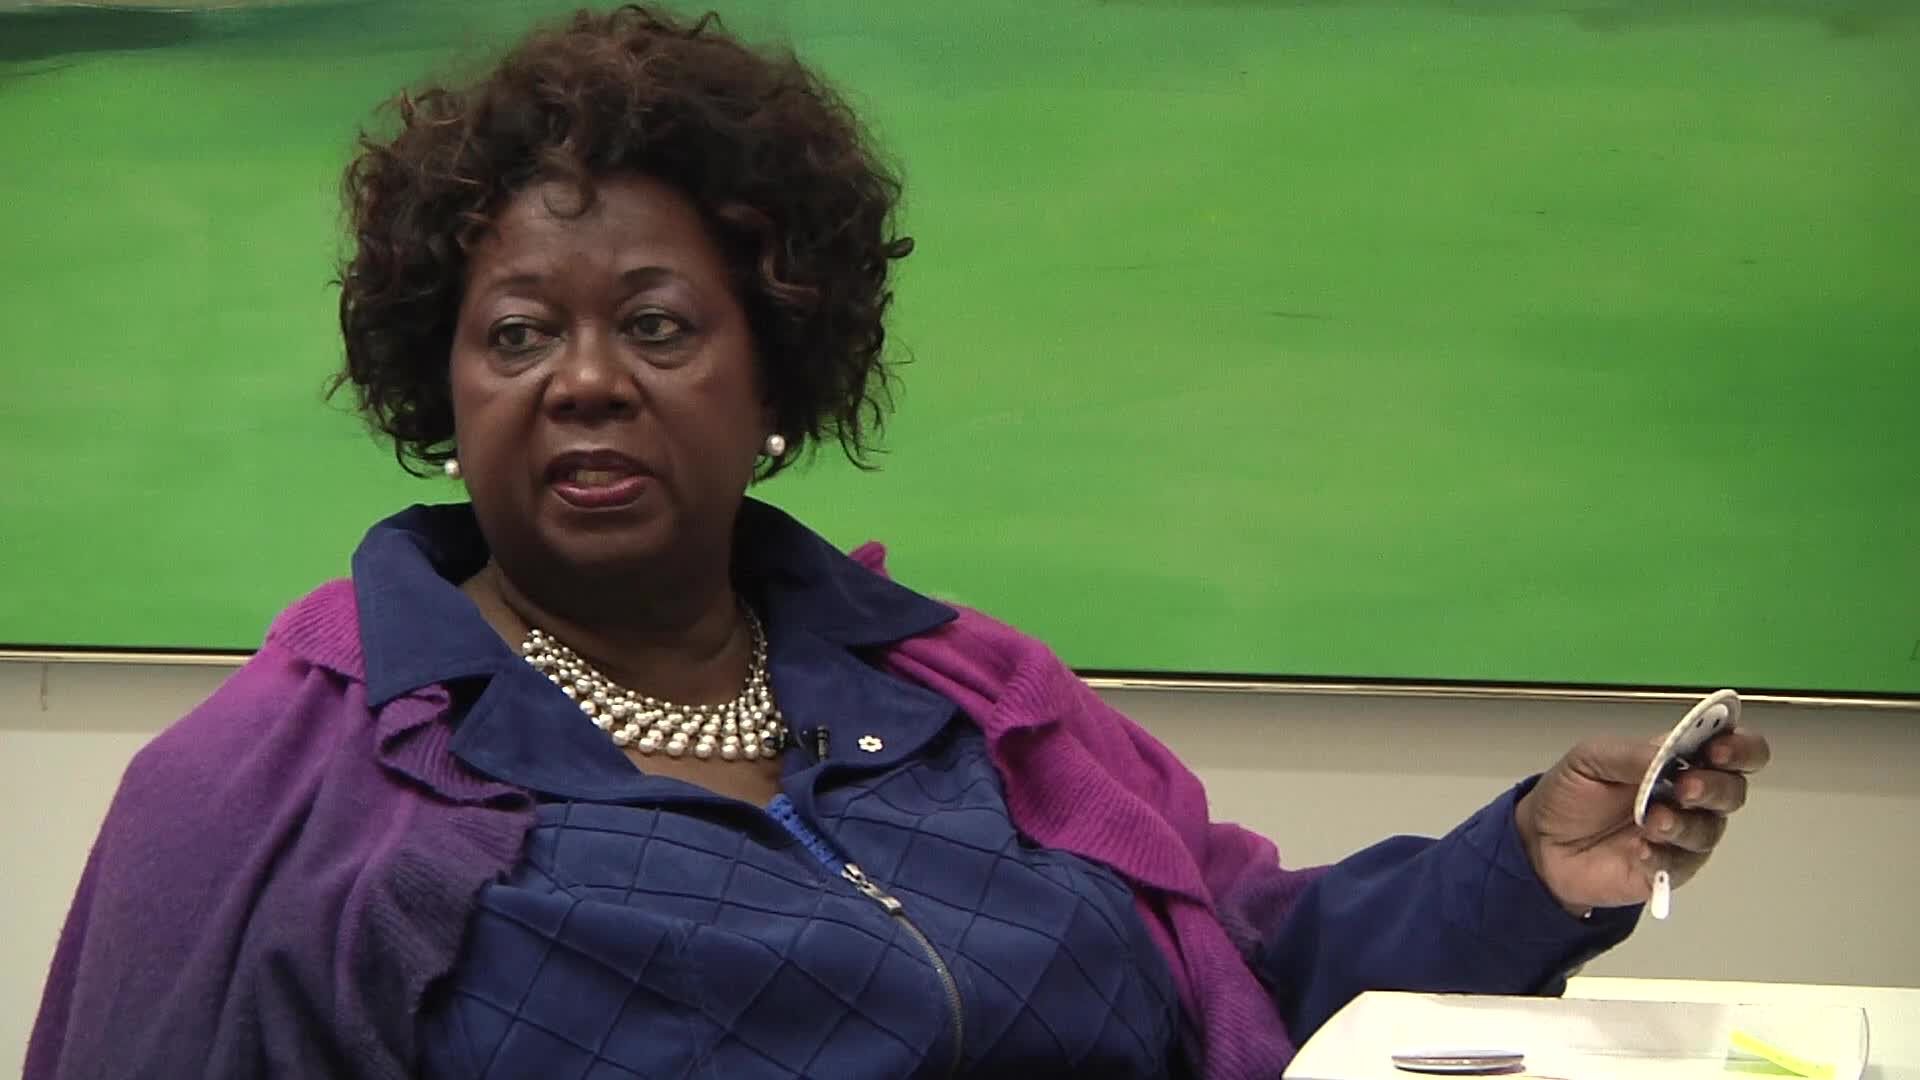 Jean Augustine interview: April 17 1985 a date with equality button